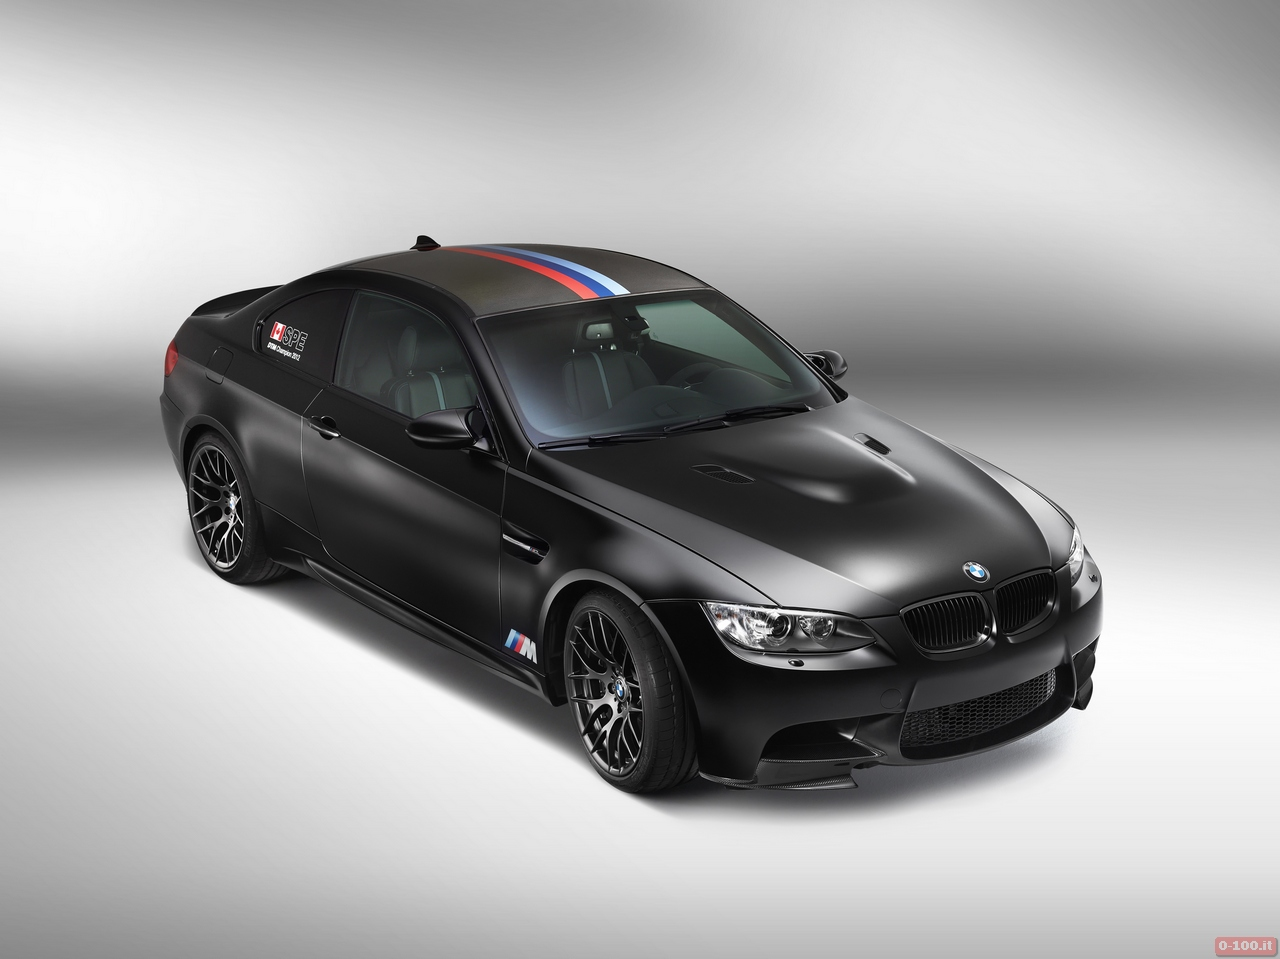 bmw-m3-dtm-champion-edition_0-100_1